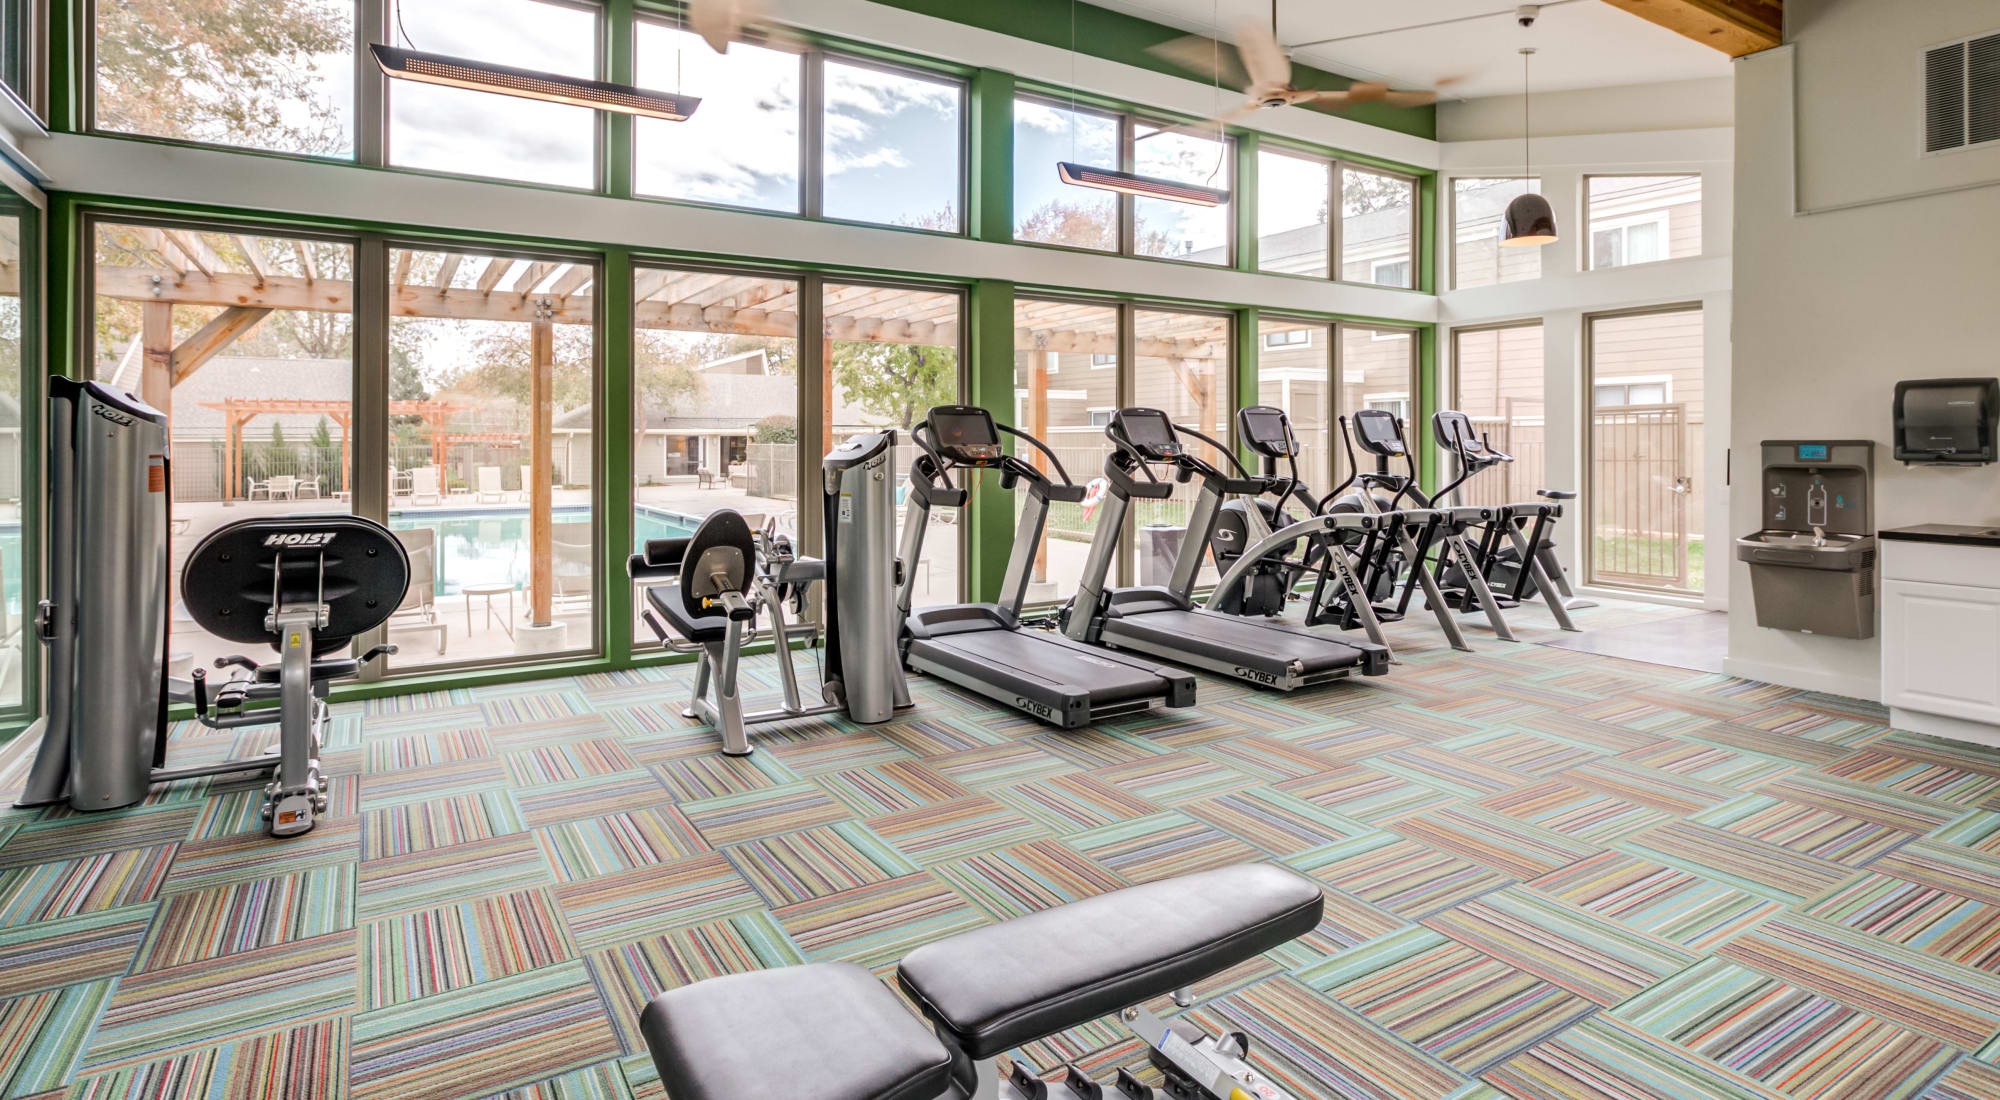 Well-equipped fitness center at The Ranch at Bear Creek Apartments & Townhomes in Lakewood, Colorado